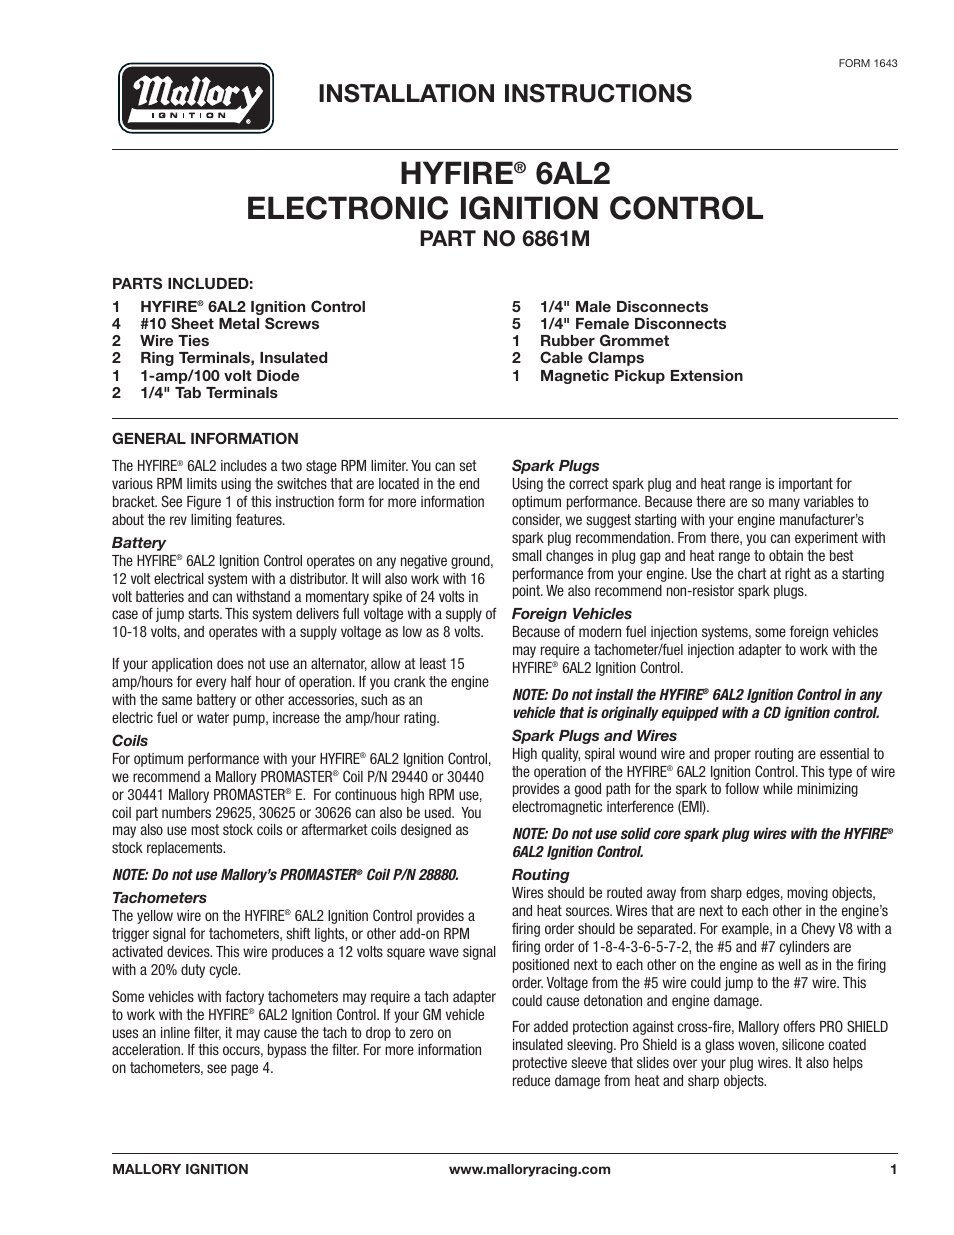 100 [ Mallory Mag Wiring Diagram ] Vertex Magneto Wiring Mallory Ignition Mallory Hyfire 6al2 Electronic